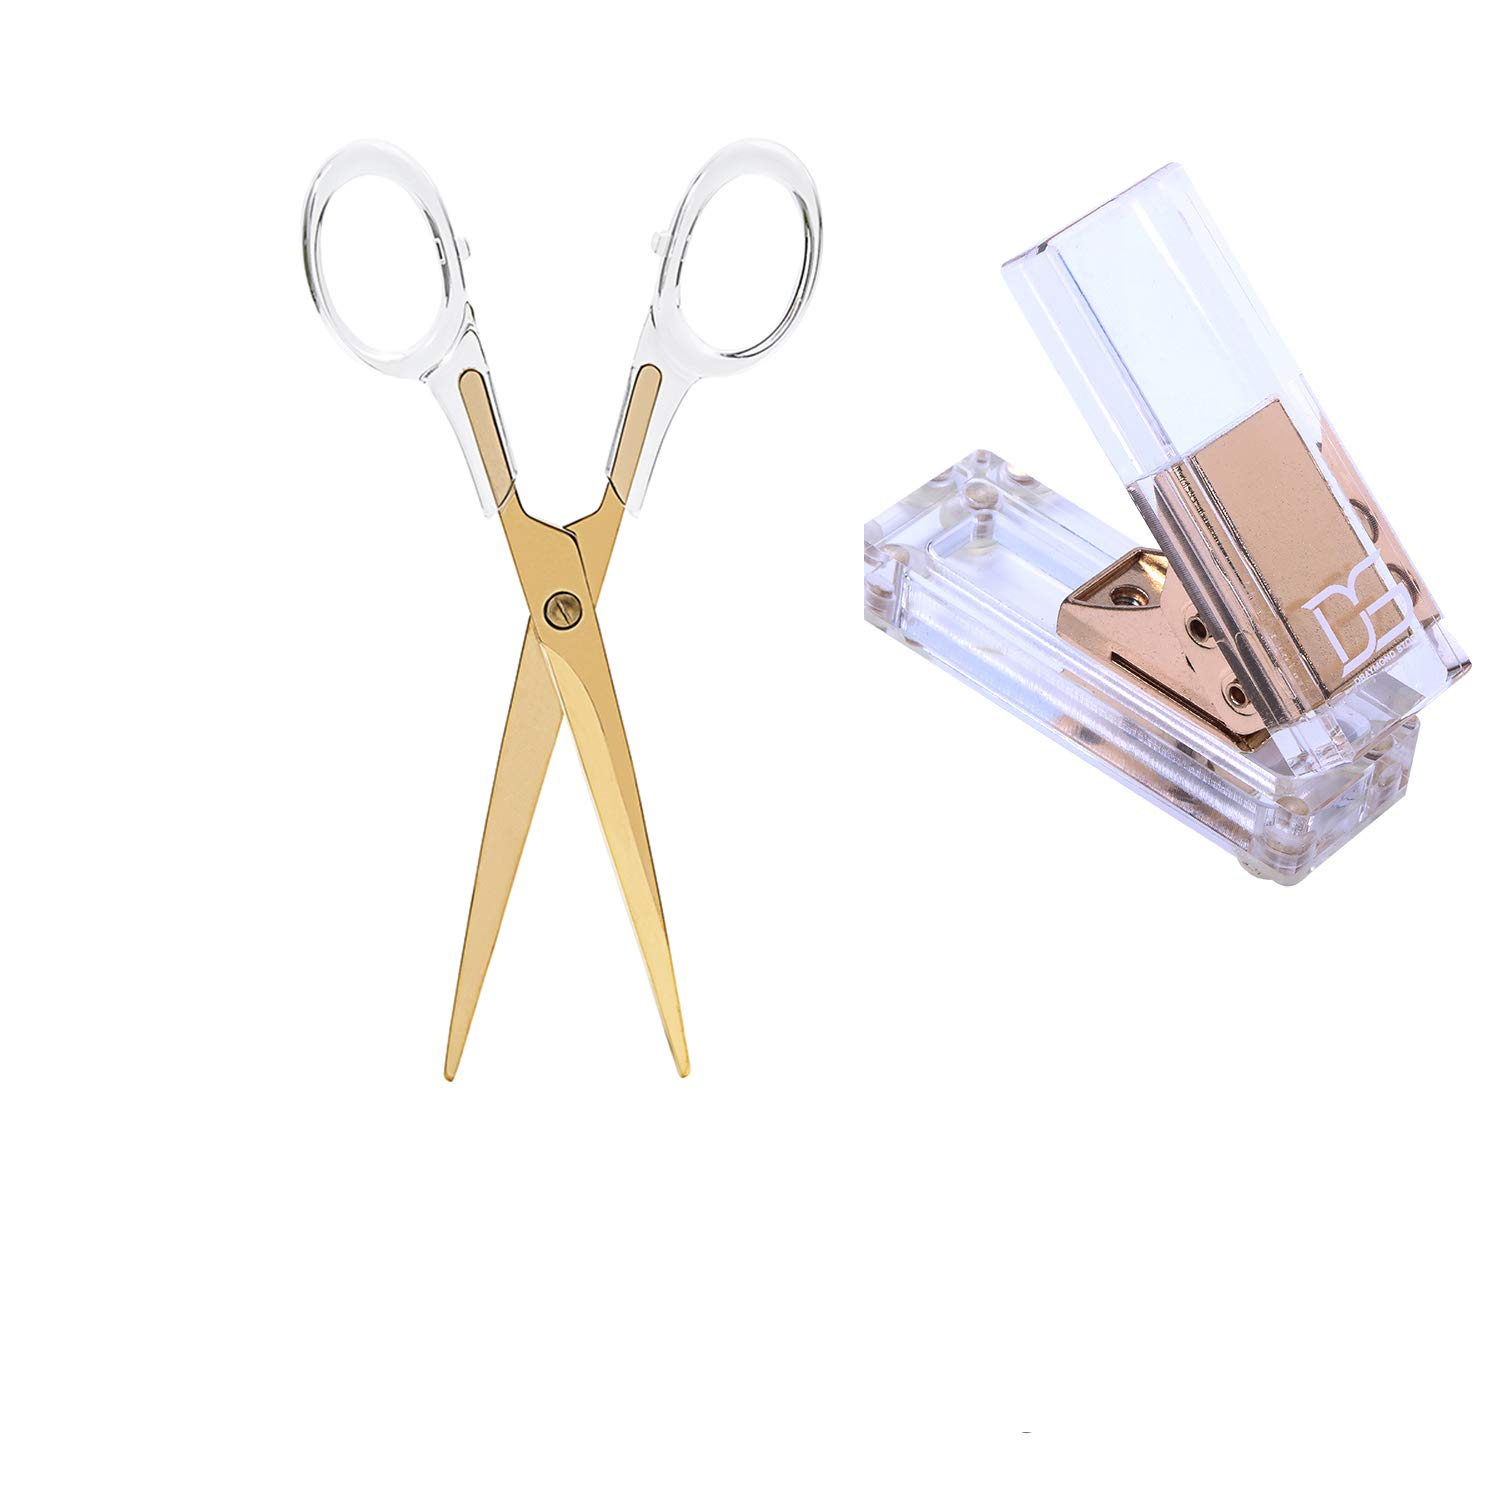 Acrylic Gold Single Hole Punch and Scissors by Draymond Story - All Gold Everything Desk Stationery